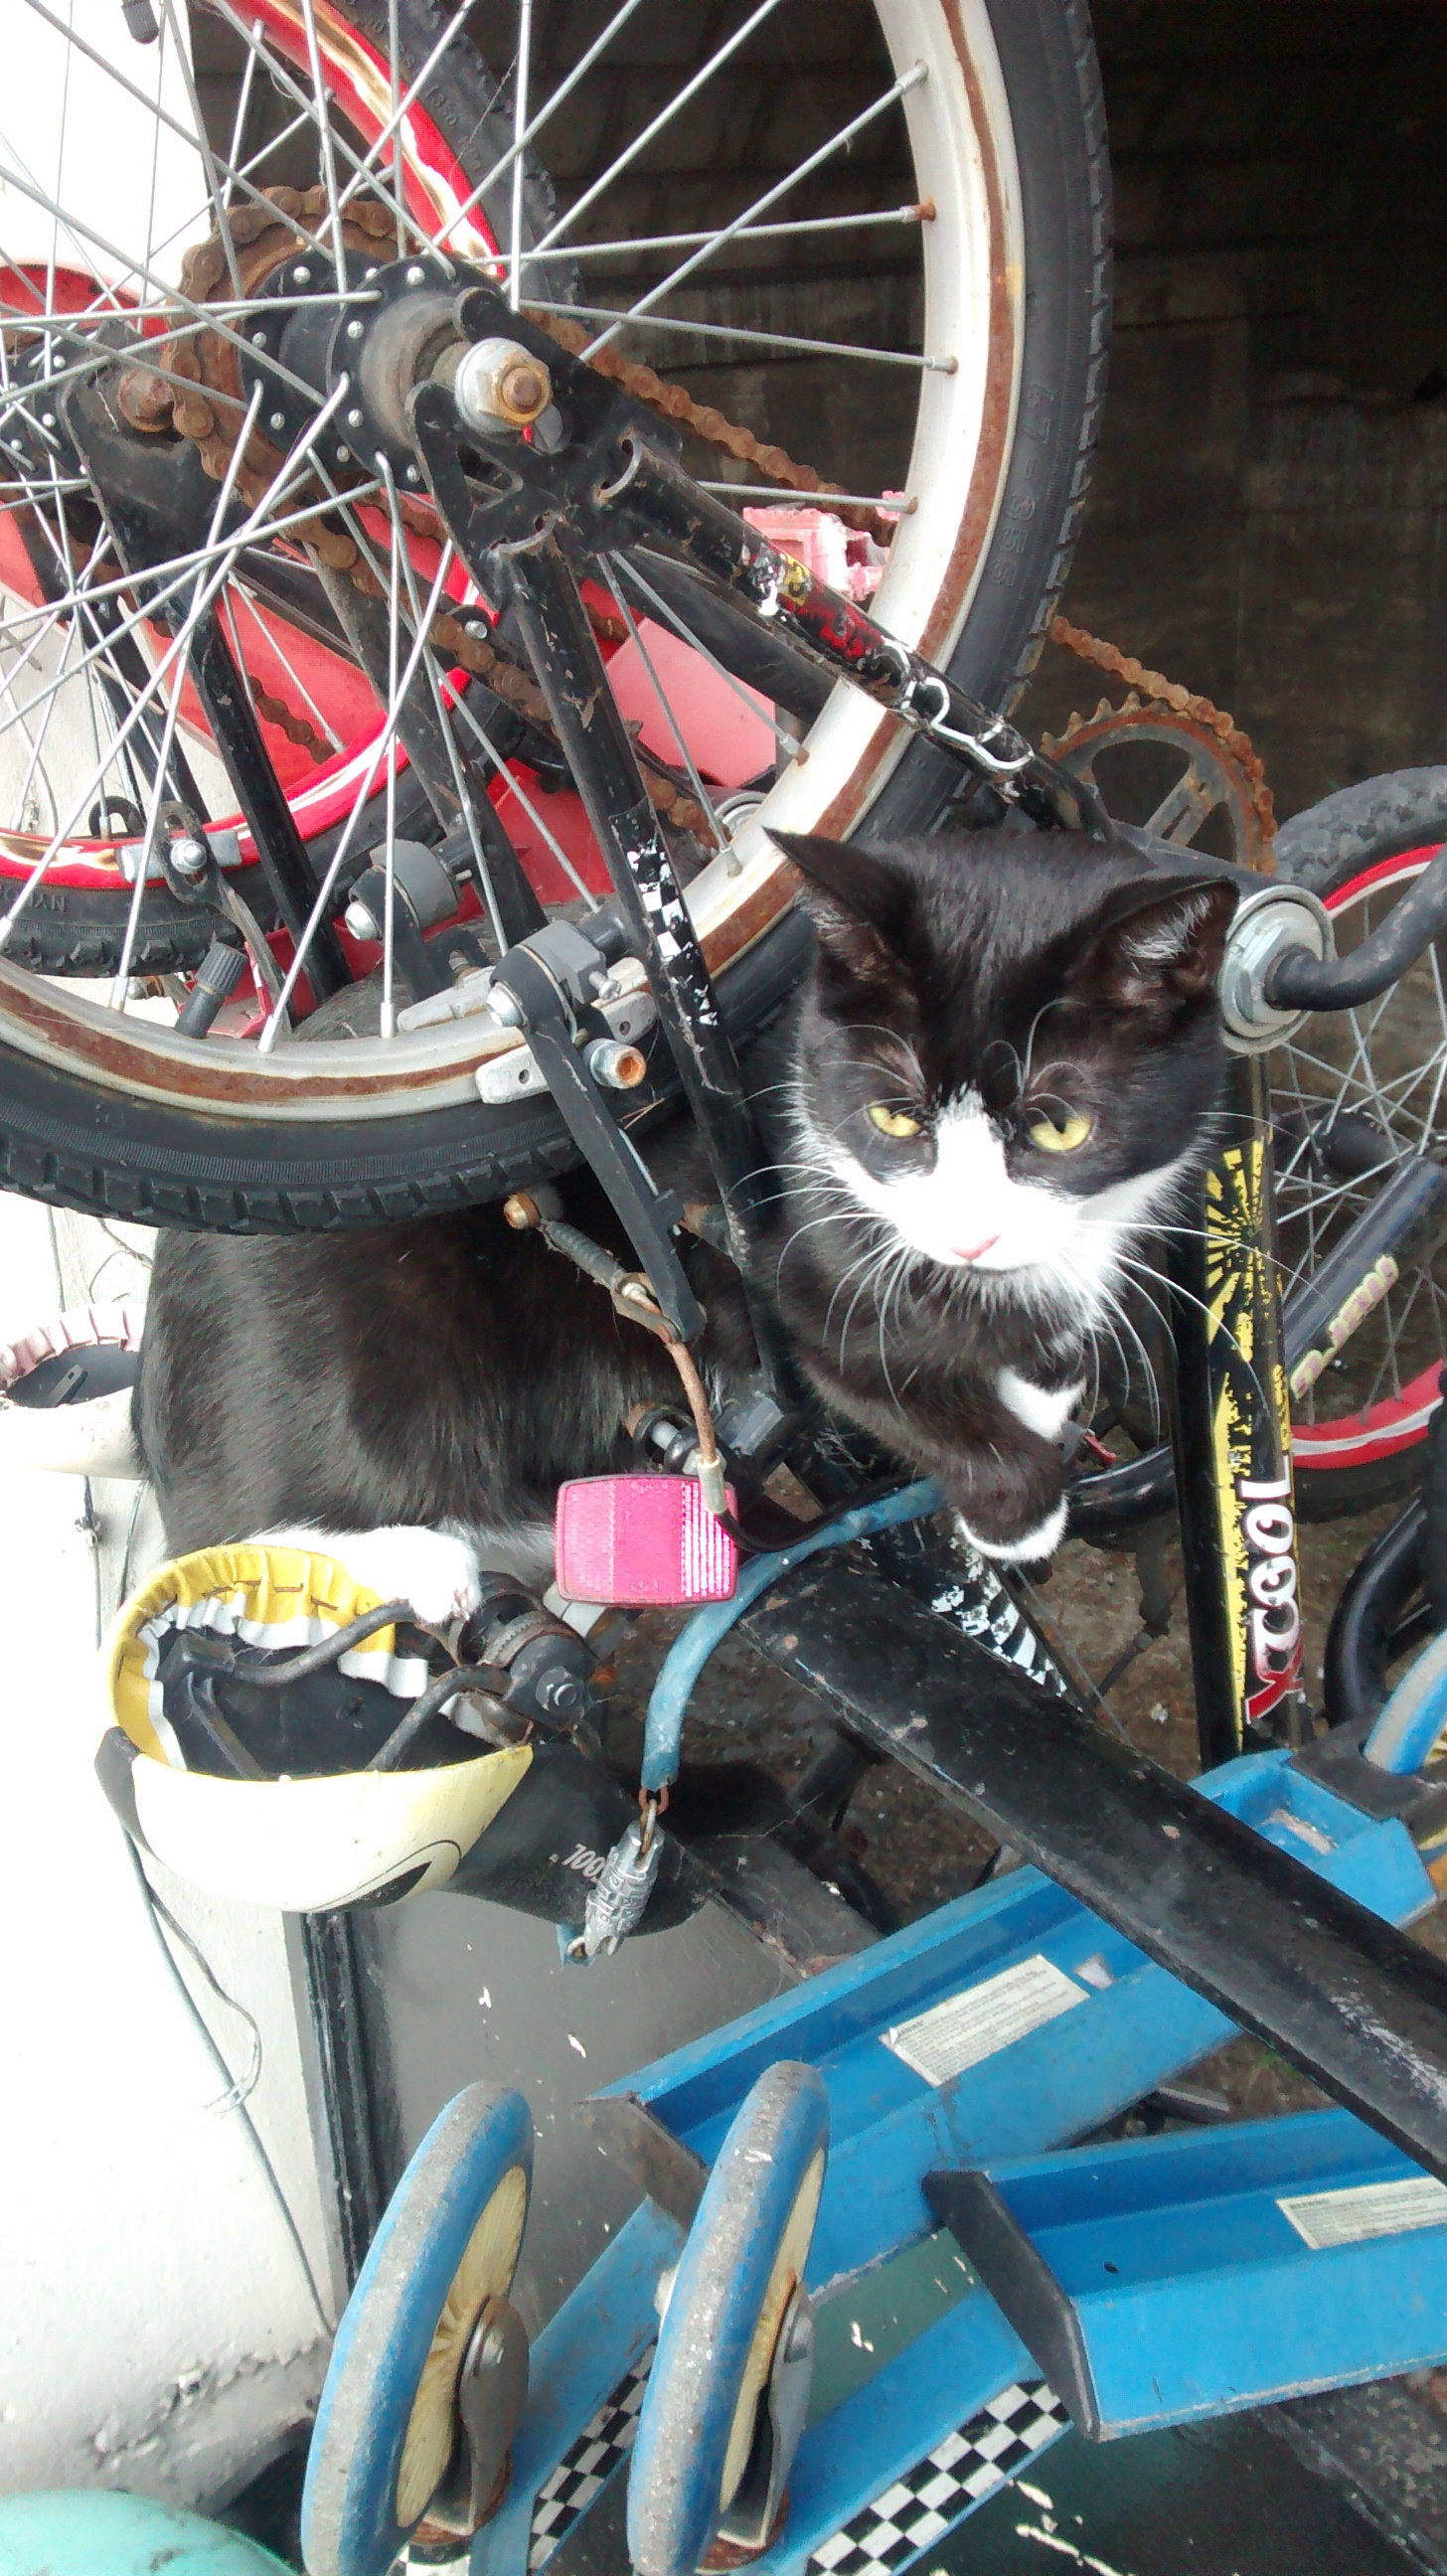 Cat-astrophe averted after Ealing feline rescued from mountain bike